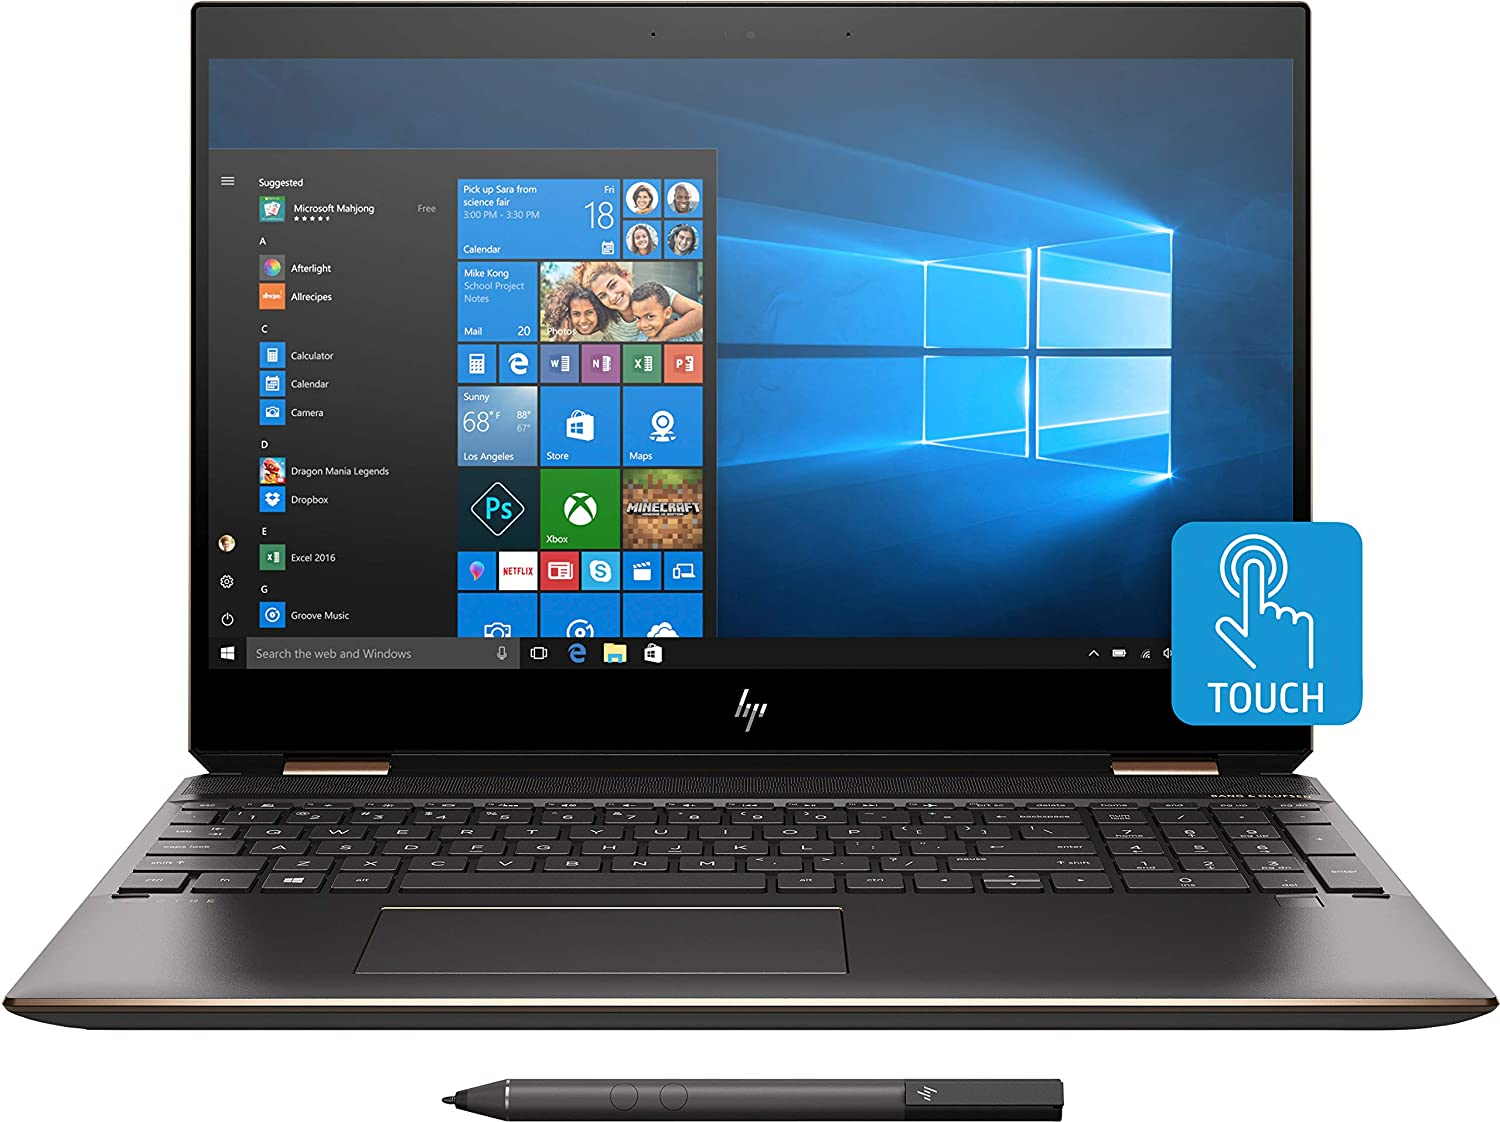 HP - Spectre x360 2-in-1 Laptop- Best Laptop for Day Trading